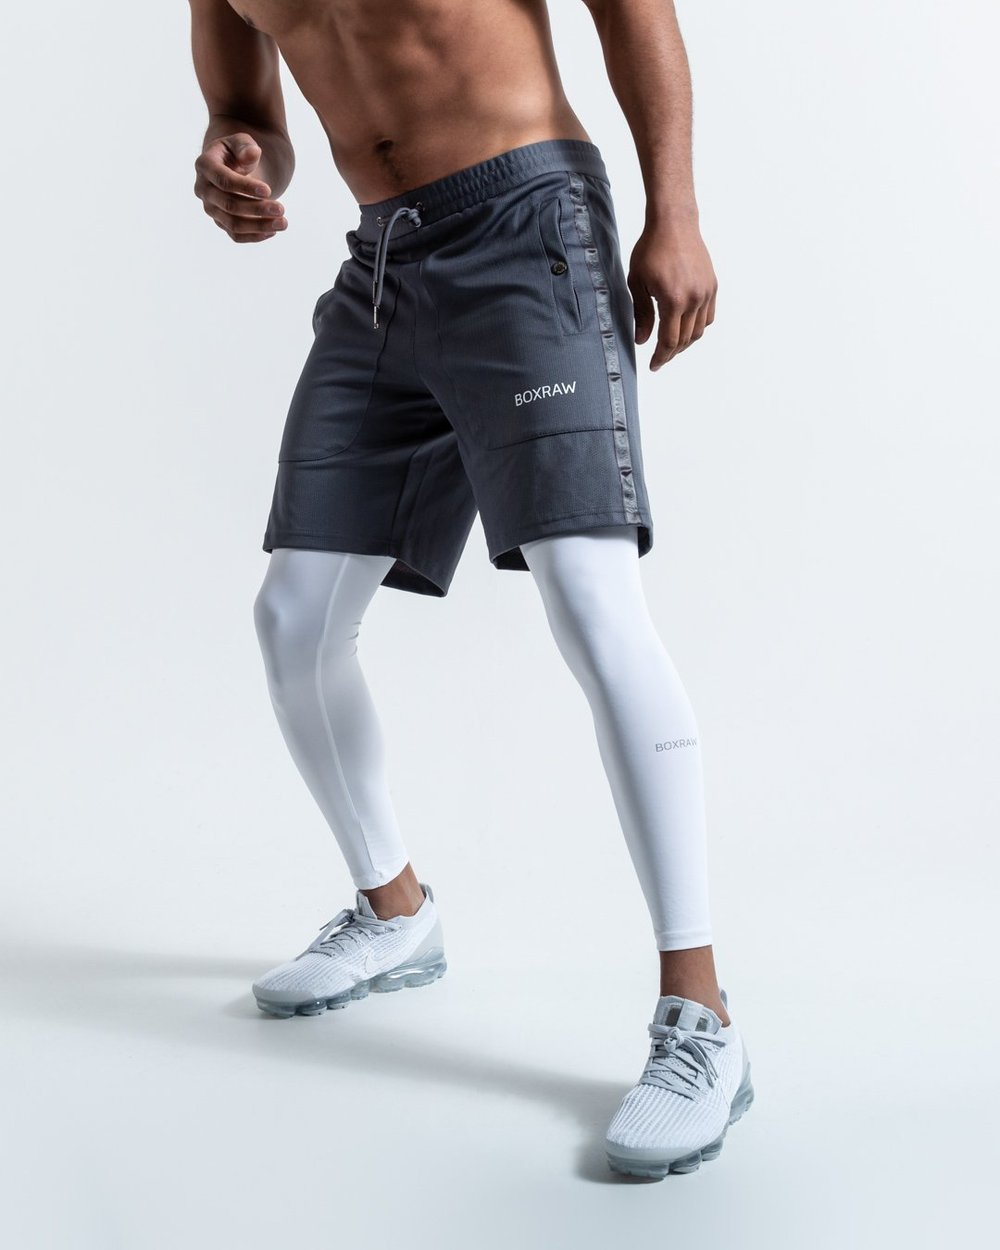 PEP SHORTS (2-IN-1 TRAINING TIGHTS) GREY - Pandemic Fight Gear Inc.